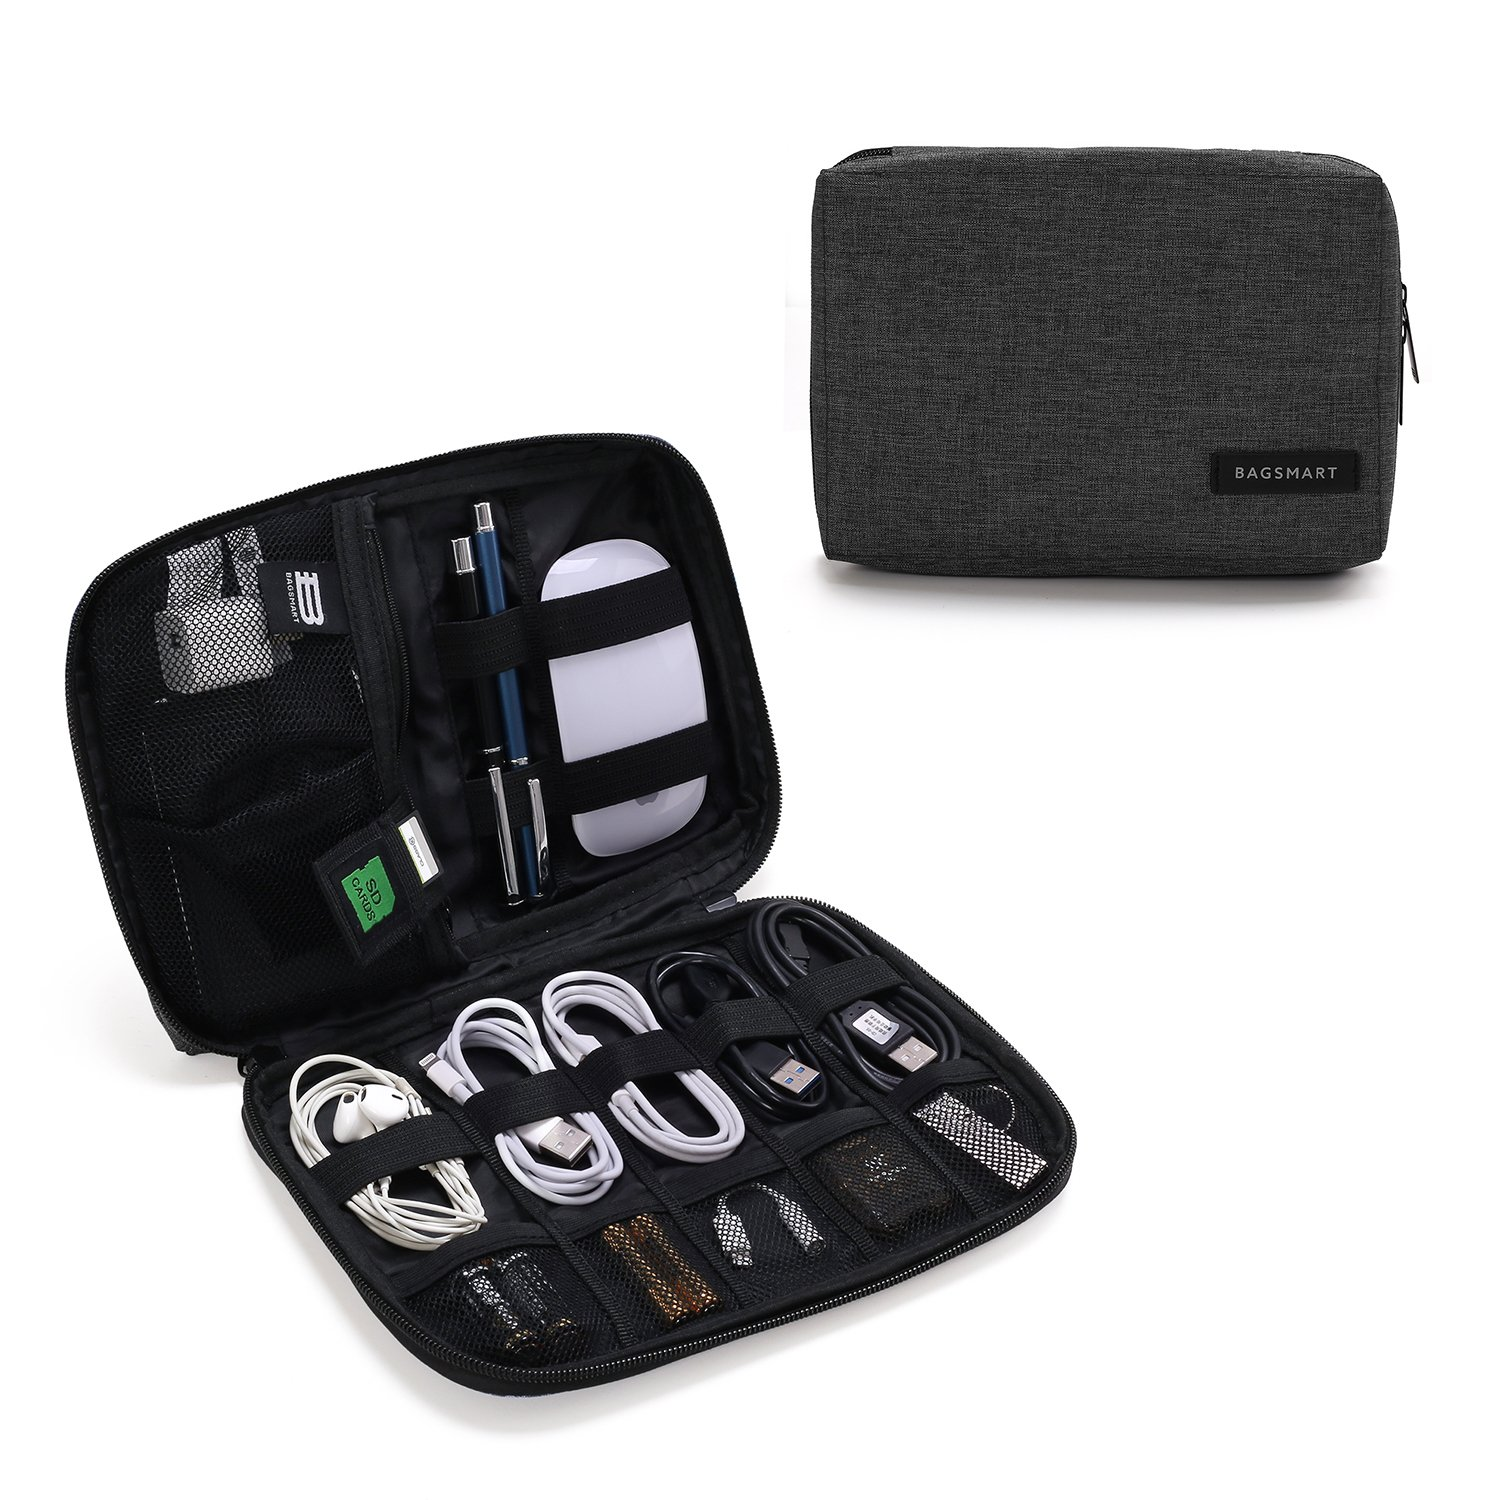 The BAGSMART Electronic/Cable Organizer travel product recommended by Chelsea Bancroft on Lifney.